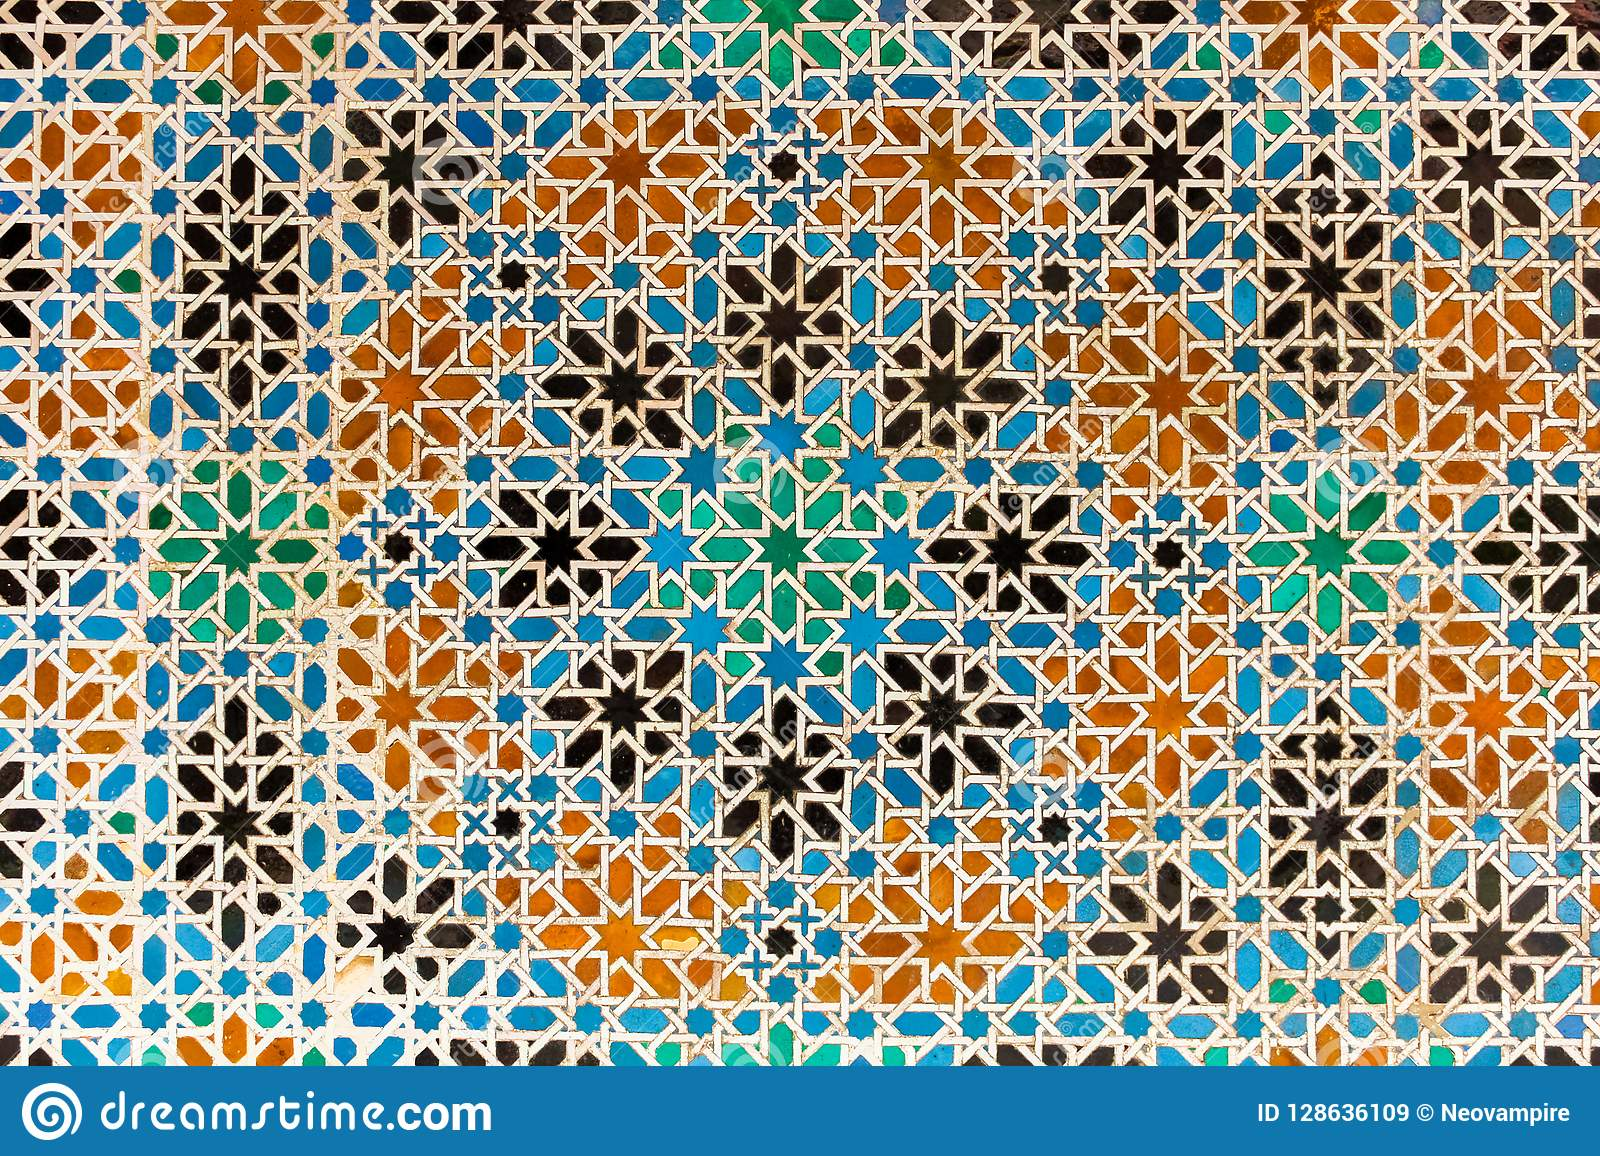 Arabesque with patterns from Granada, Spain